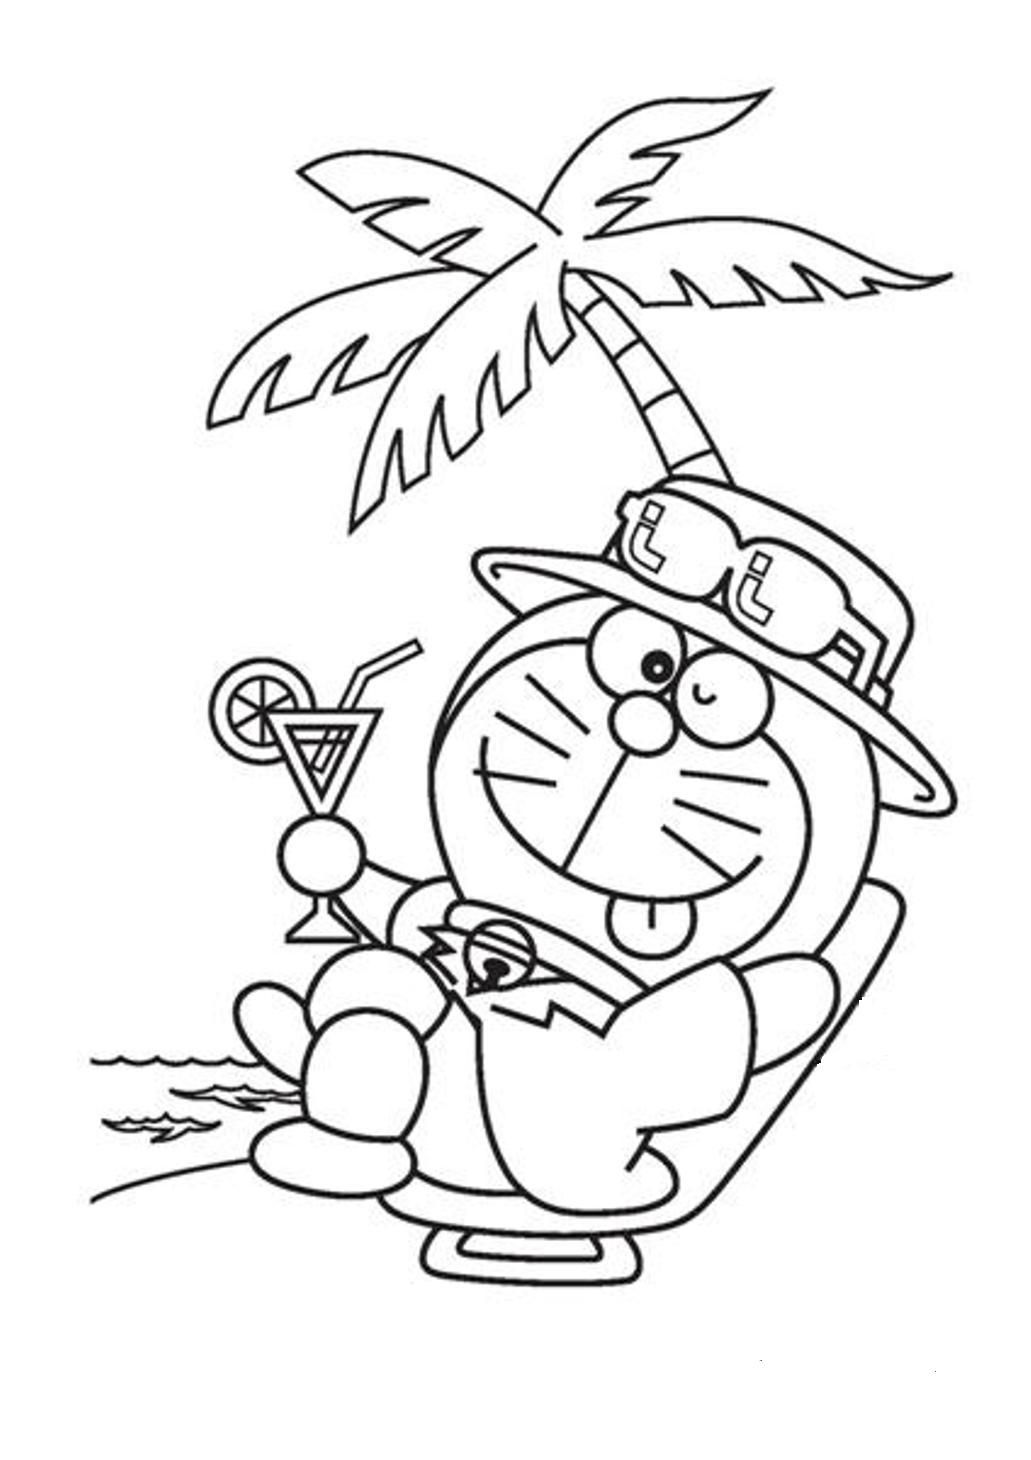 Doraemon coloring games online - Relaxing Doraemon Cartoon Coloring Pages